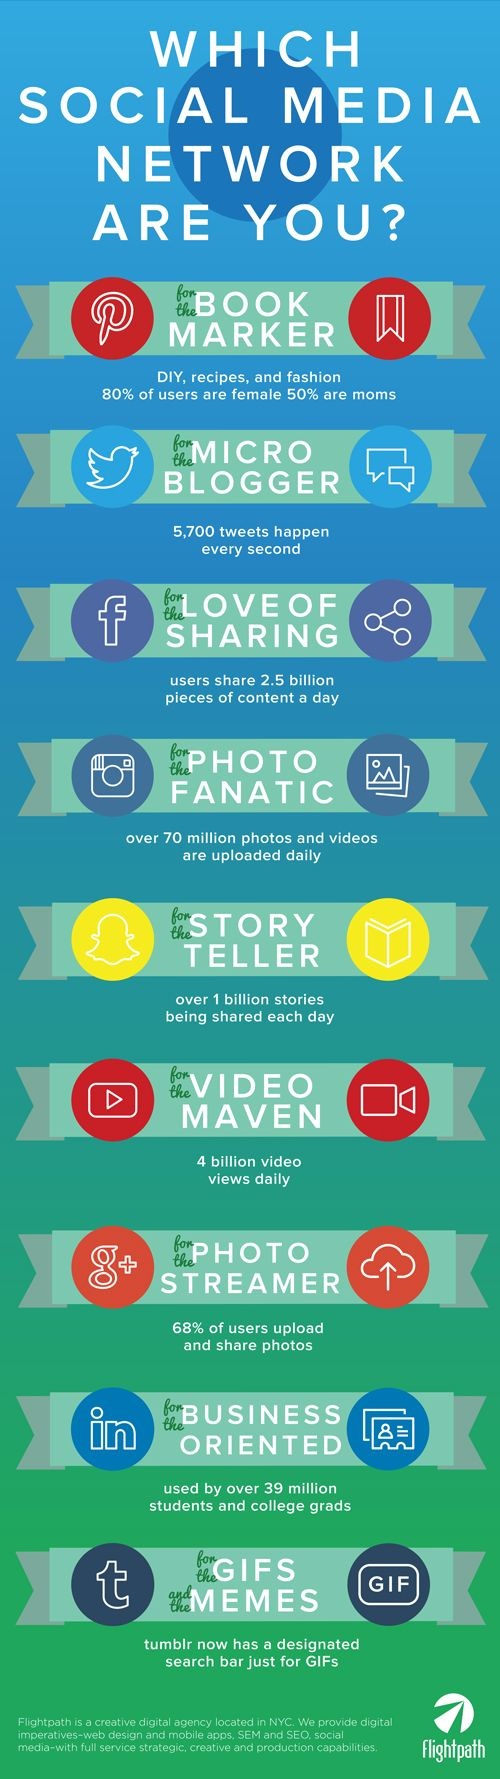 Which Social Media Network are You?